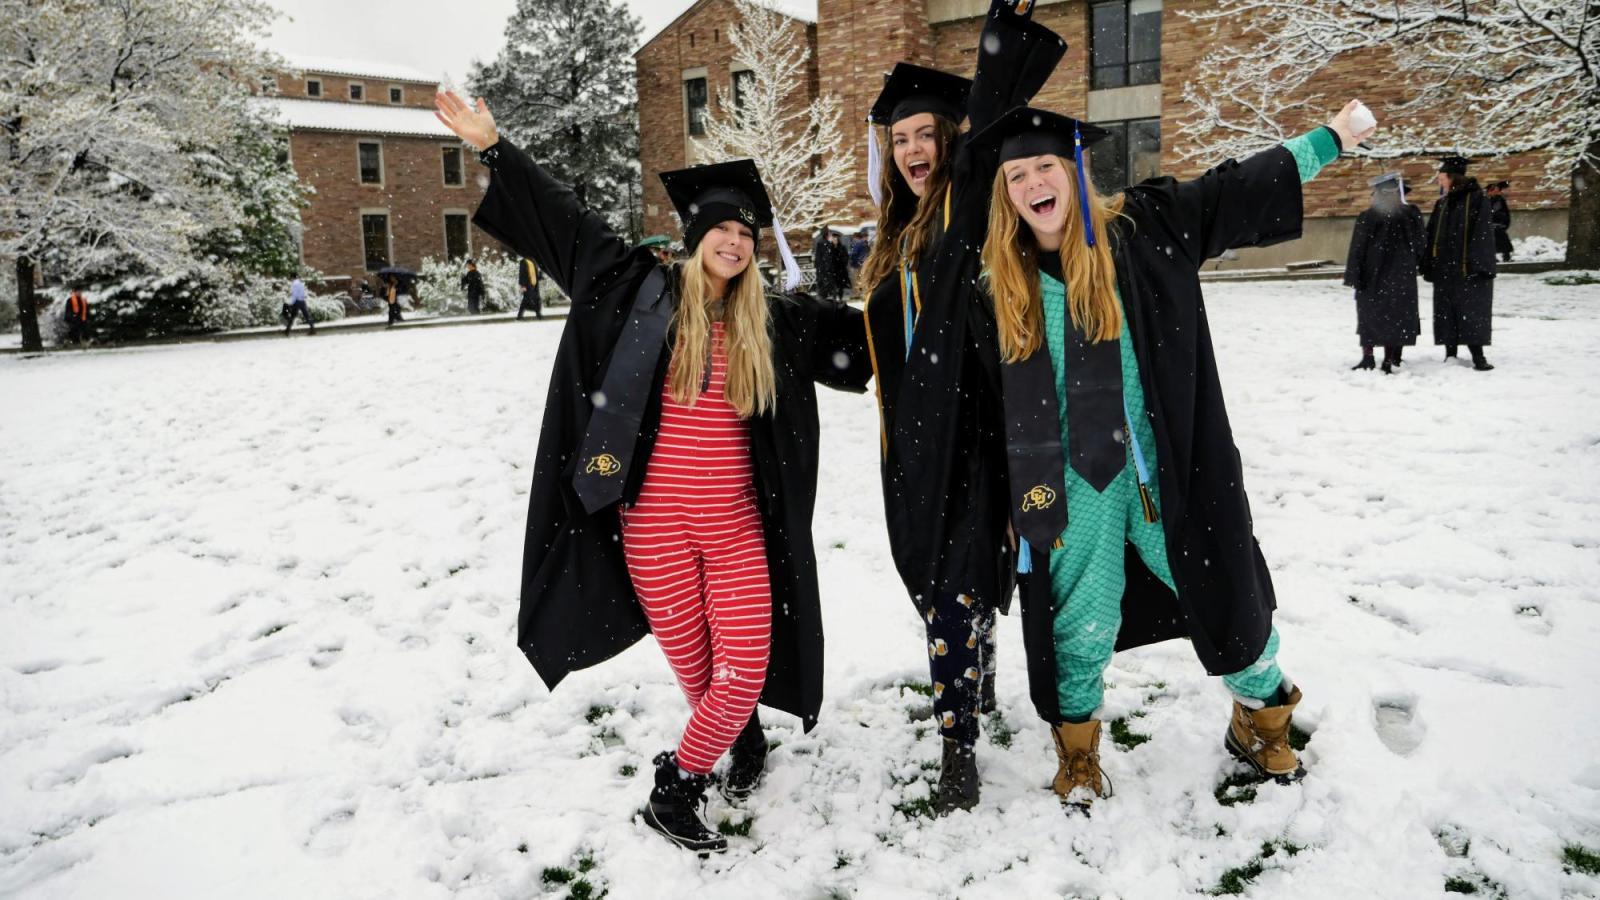 Grads in snow